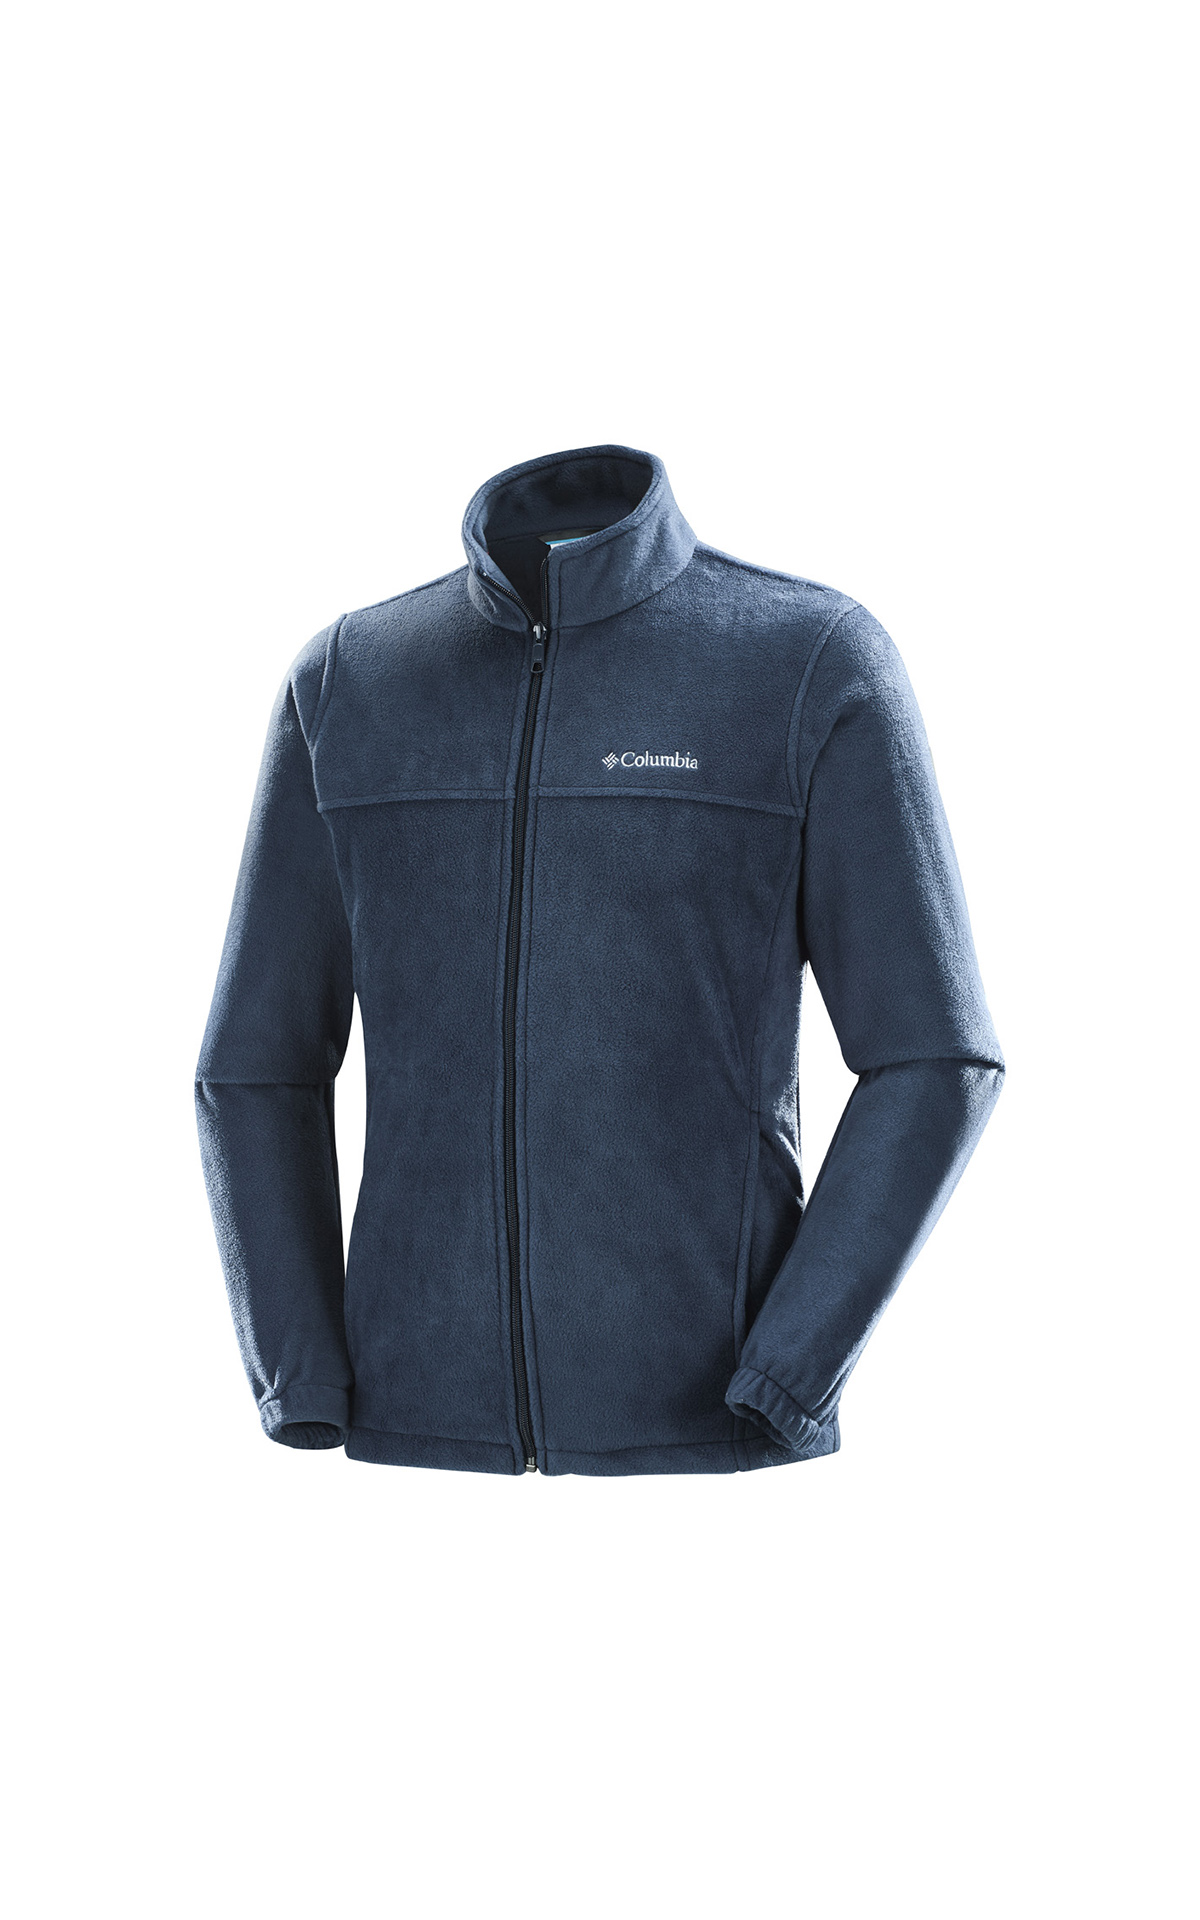 Navy blue fleece Columbia